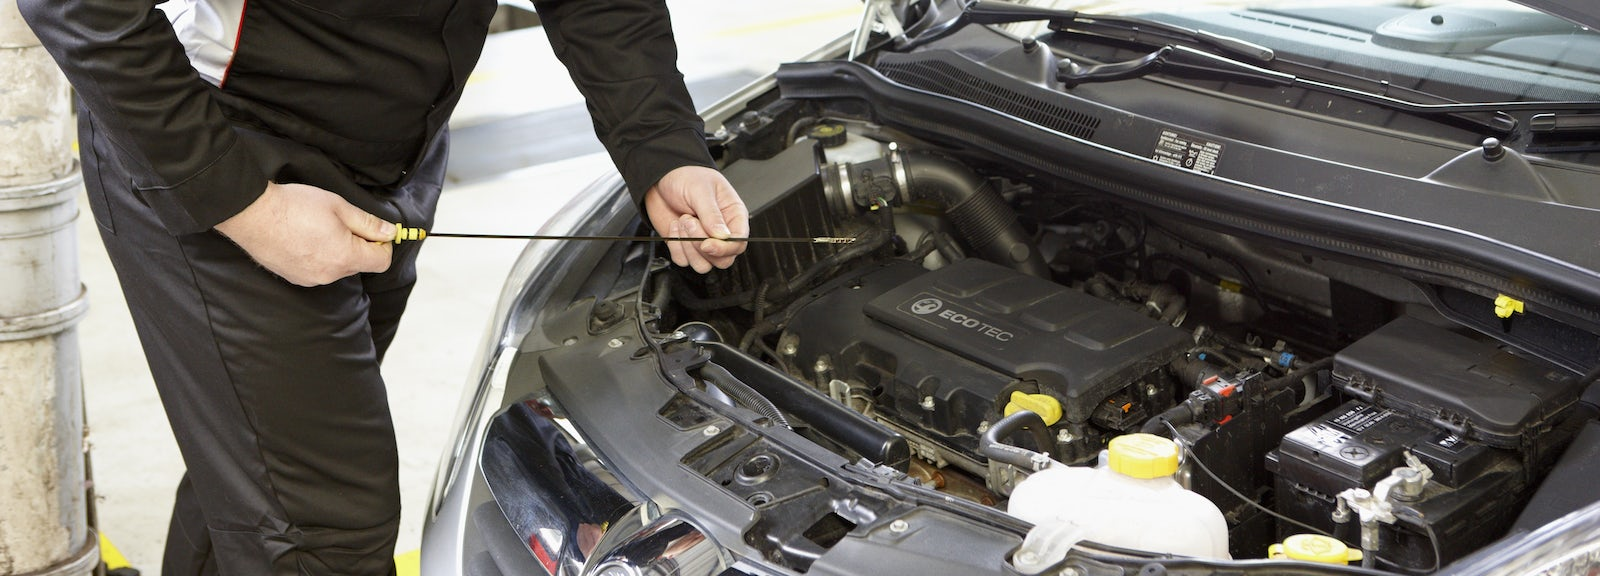 What are car servicing plans and are they worth it? | carwow